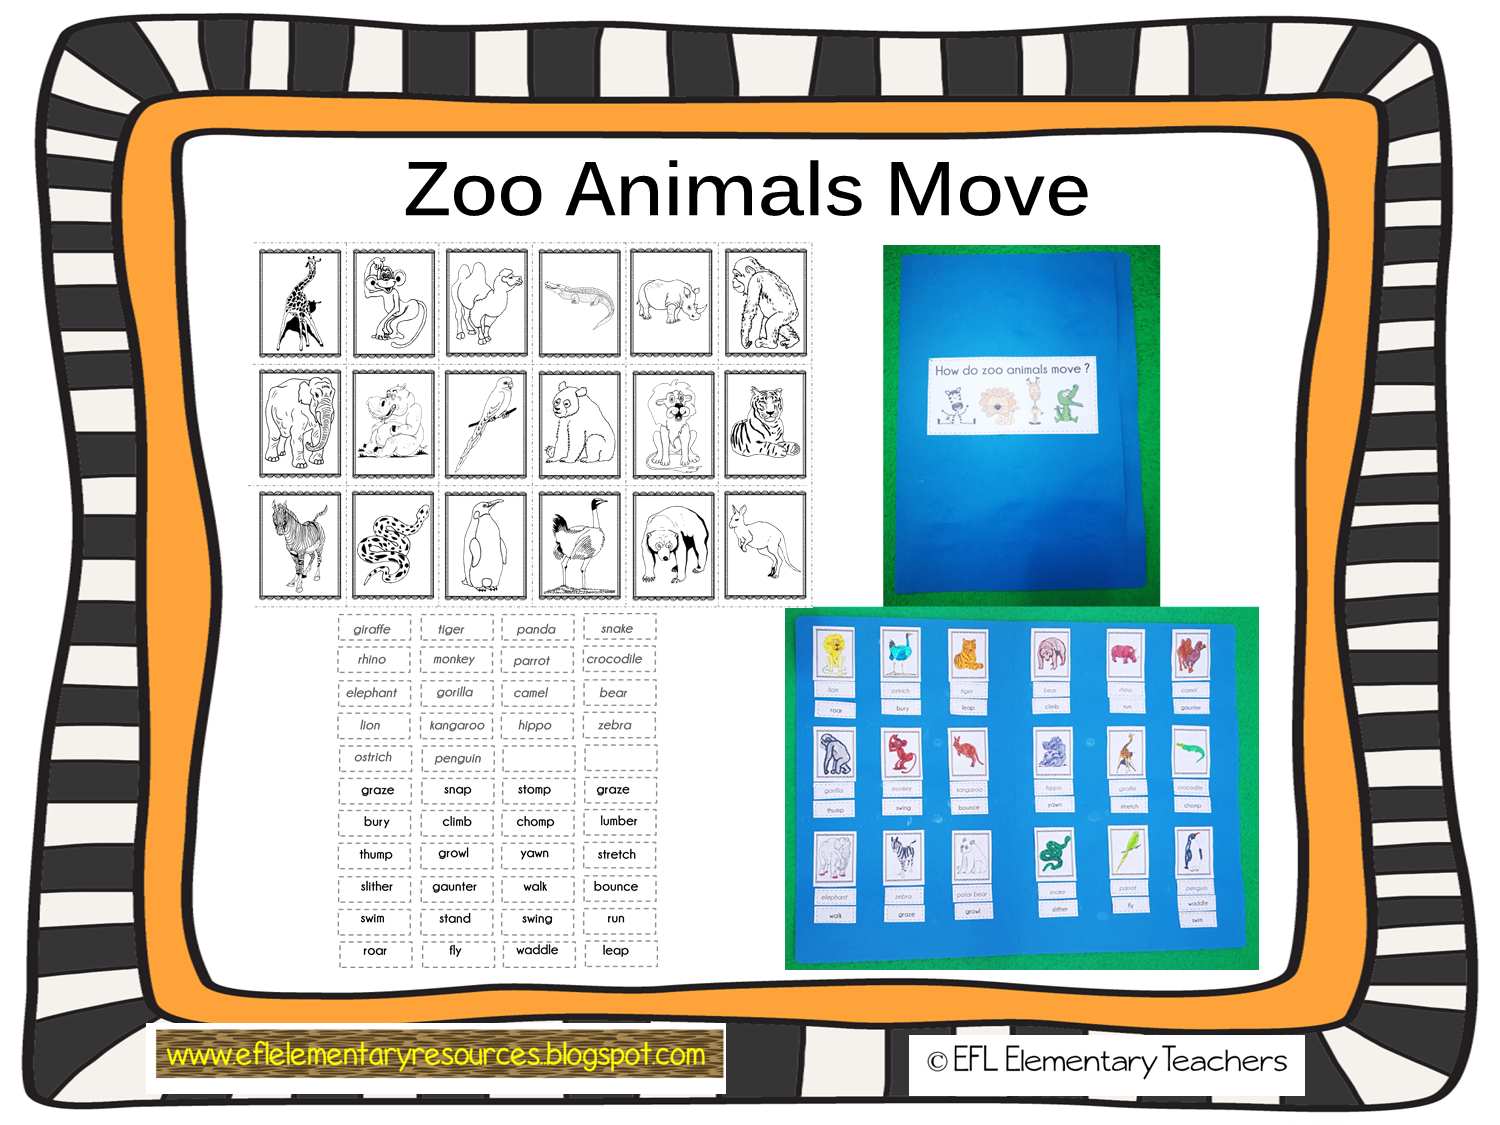 Efl Elementary Teachers Zoo Animal Move Resources For Elementary Esl